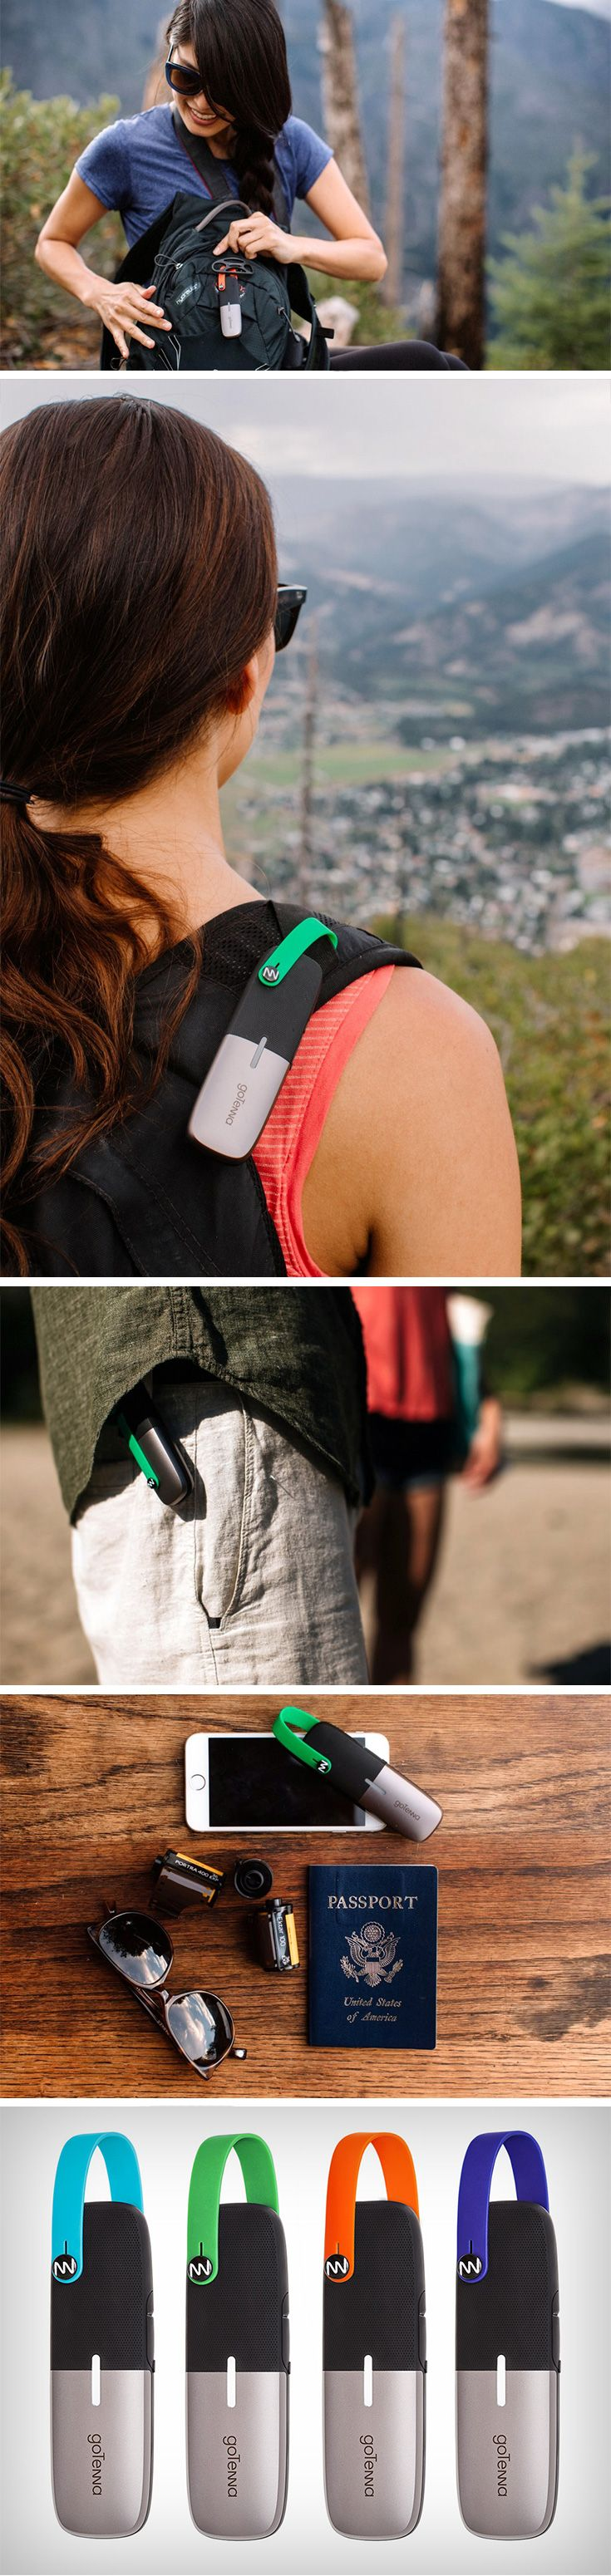 Founded by siblings Daniela and Jorge Perdomo in the wake of the Sandy Hurricane, the GoTenna Mesh was envisioned to be a saving grace for all situations when phone communications would be down. The Mesh pairs with your phone, giving it the ability to send out messages, make calls, share locations, in a completely encrypted format. Think of it as a much more advanced walkie-talkie that allows you to stay connected with friends/family, no matter where you are and/or how bad your cell-service…